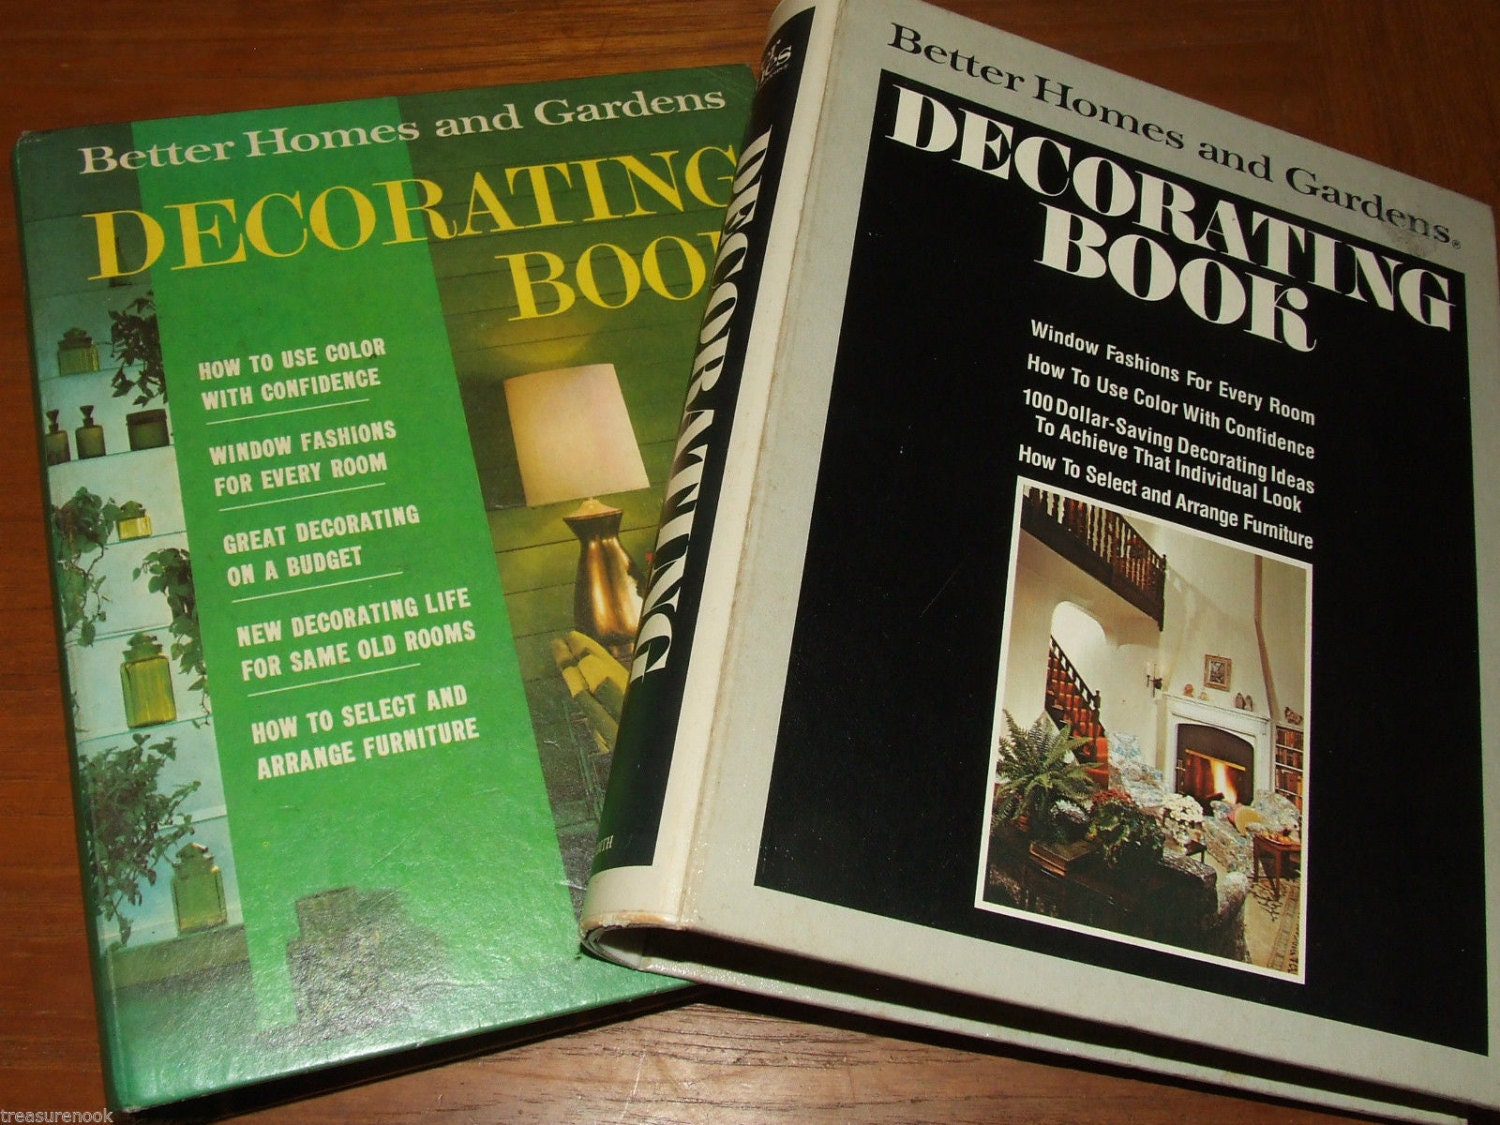 1968 better homes gardens decorating 1976 better homes - Better homes and gardens cookbook 1968 ...